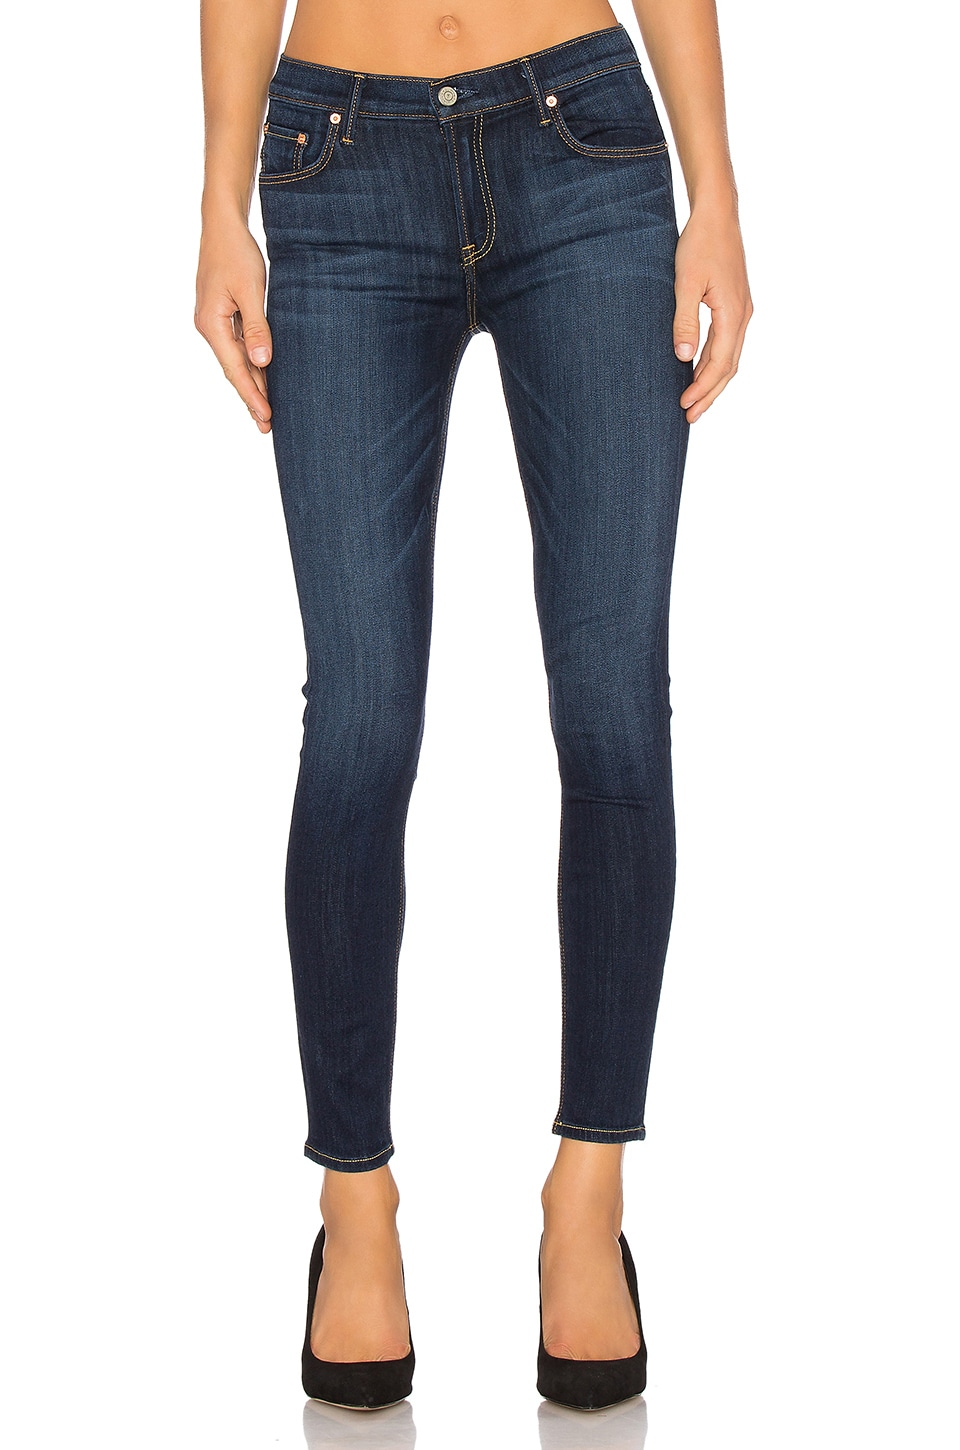 GRLFRND Candice Mid-Rise Skinny Jean in Anticipation